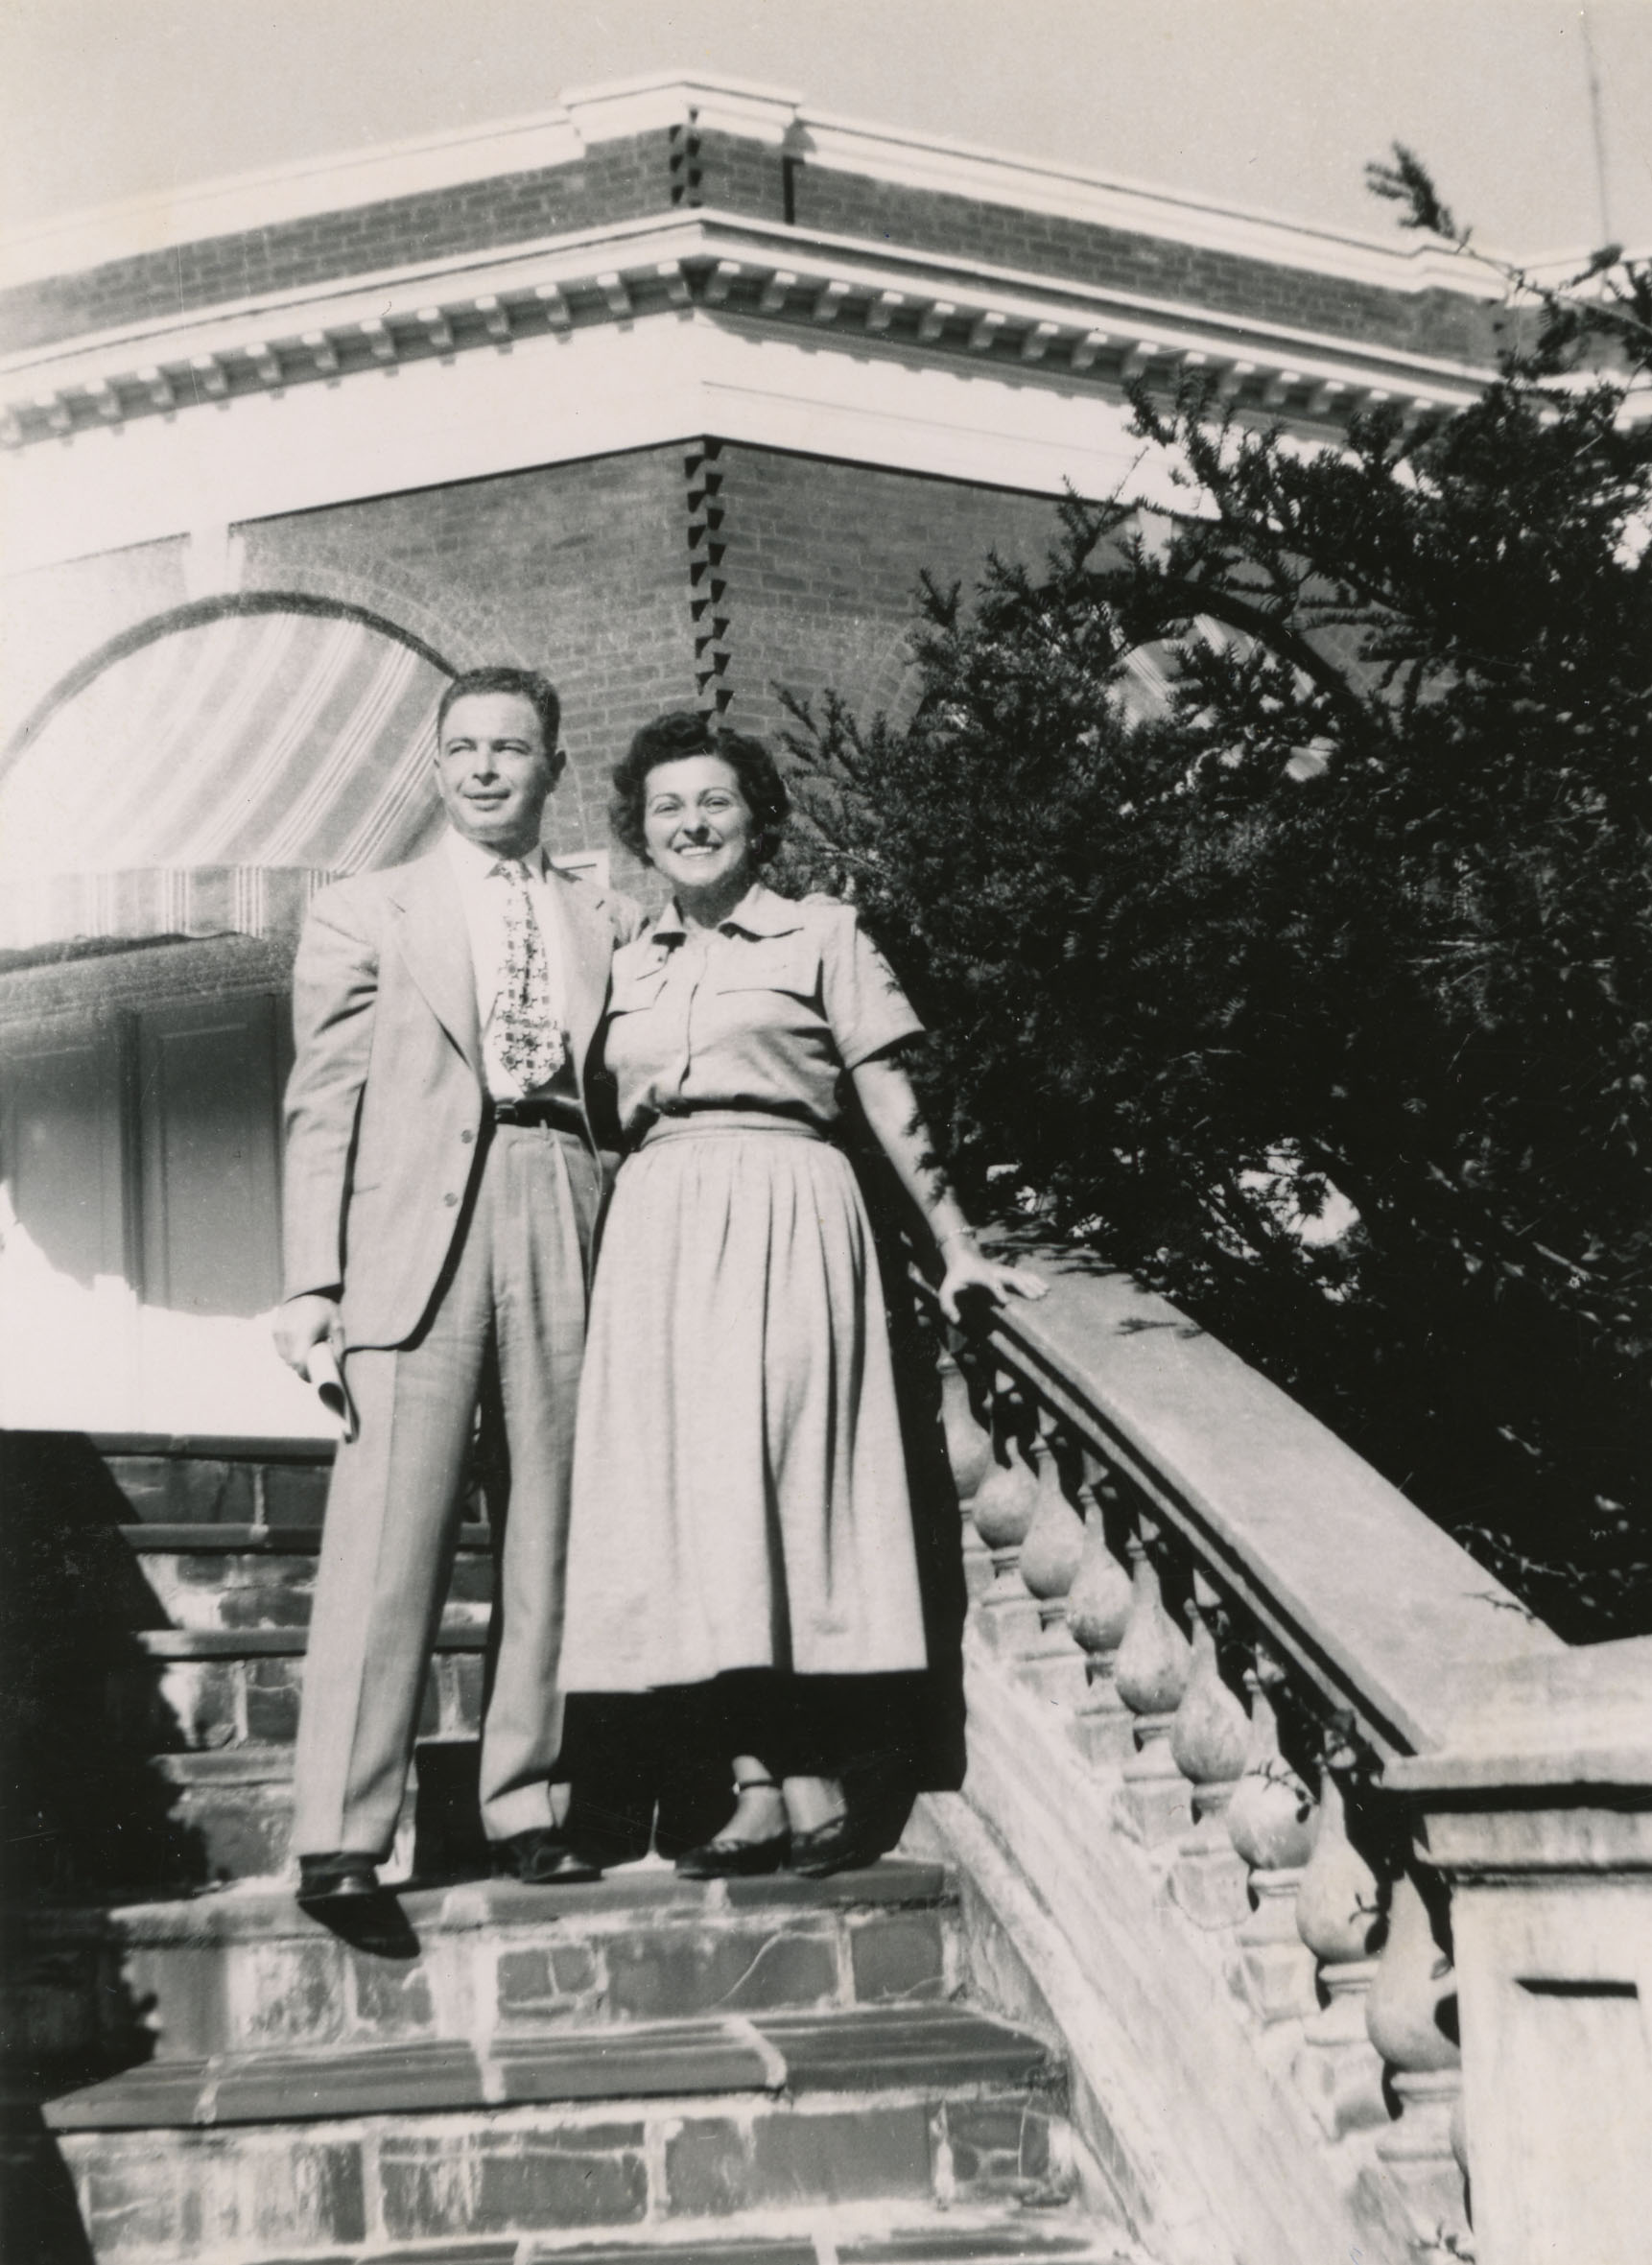 An image of: Abe and Ruth Ozer in Virginia, 1951